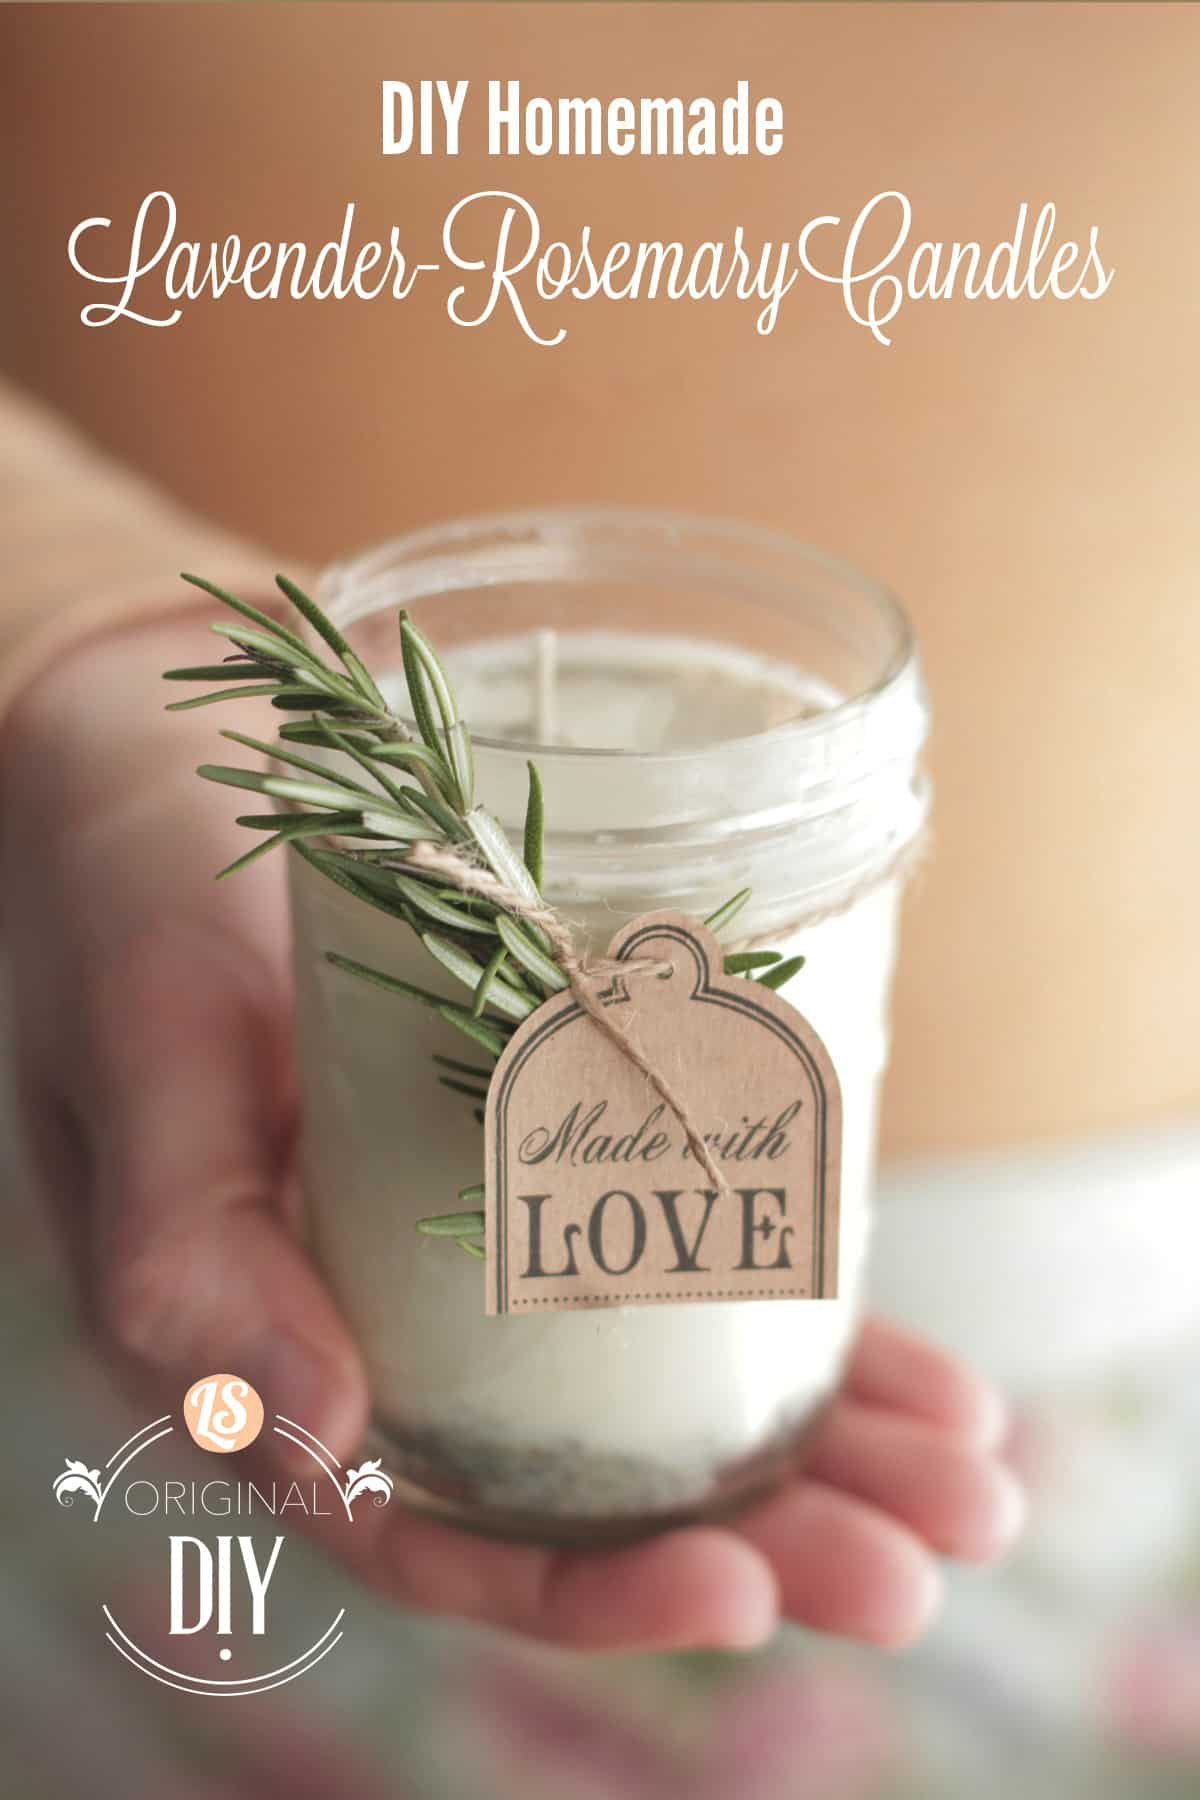 DIY lavender rosemary candles